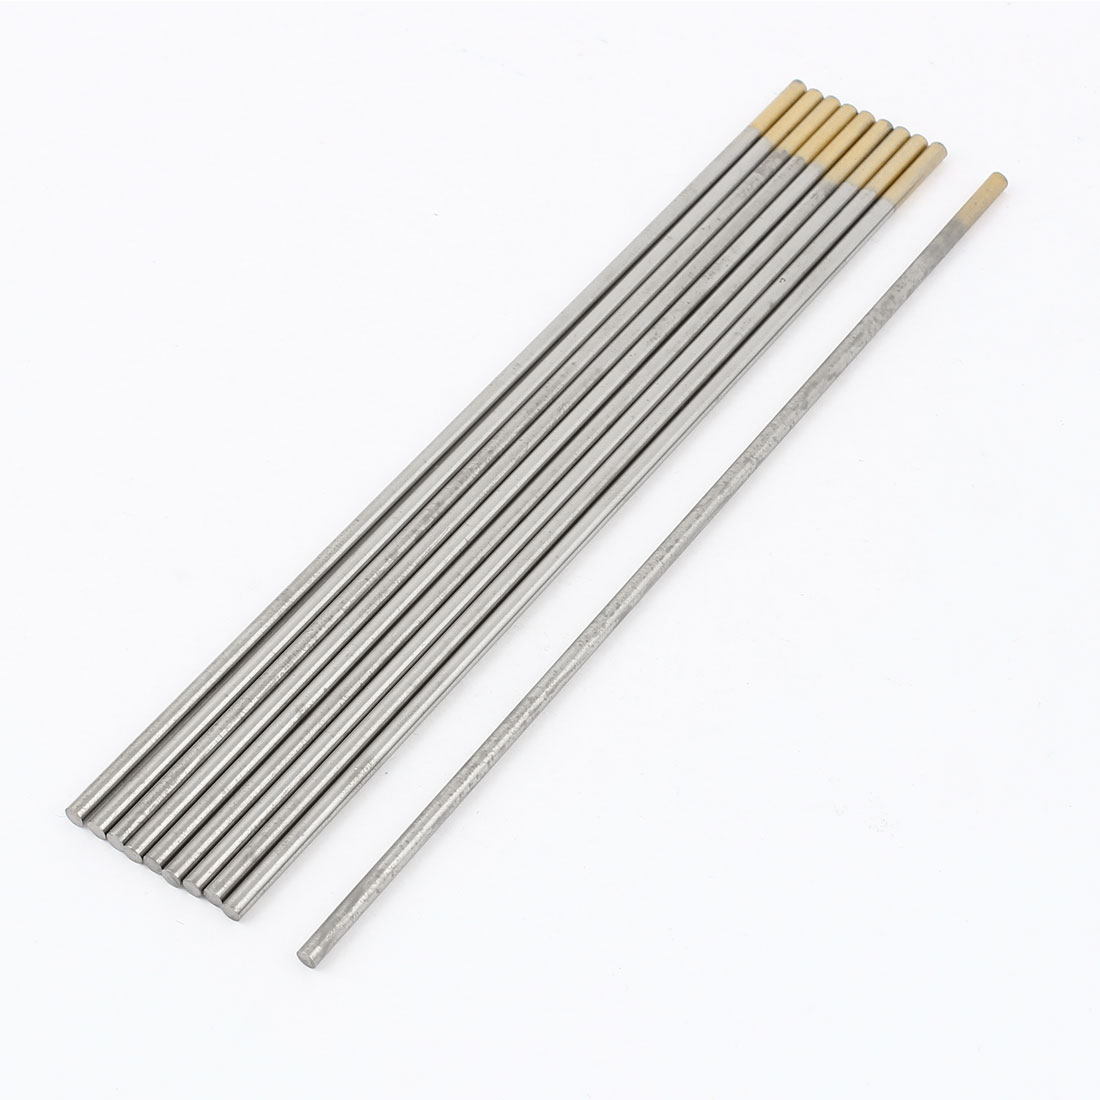 "10 Pcs TIG Welding 1.5% Lanthanated Tungsten Electrodes 1/8"" x 7"""